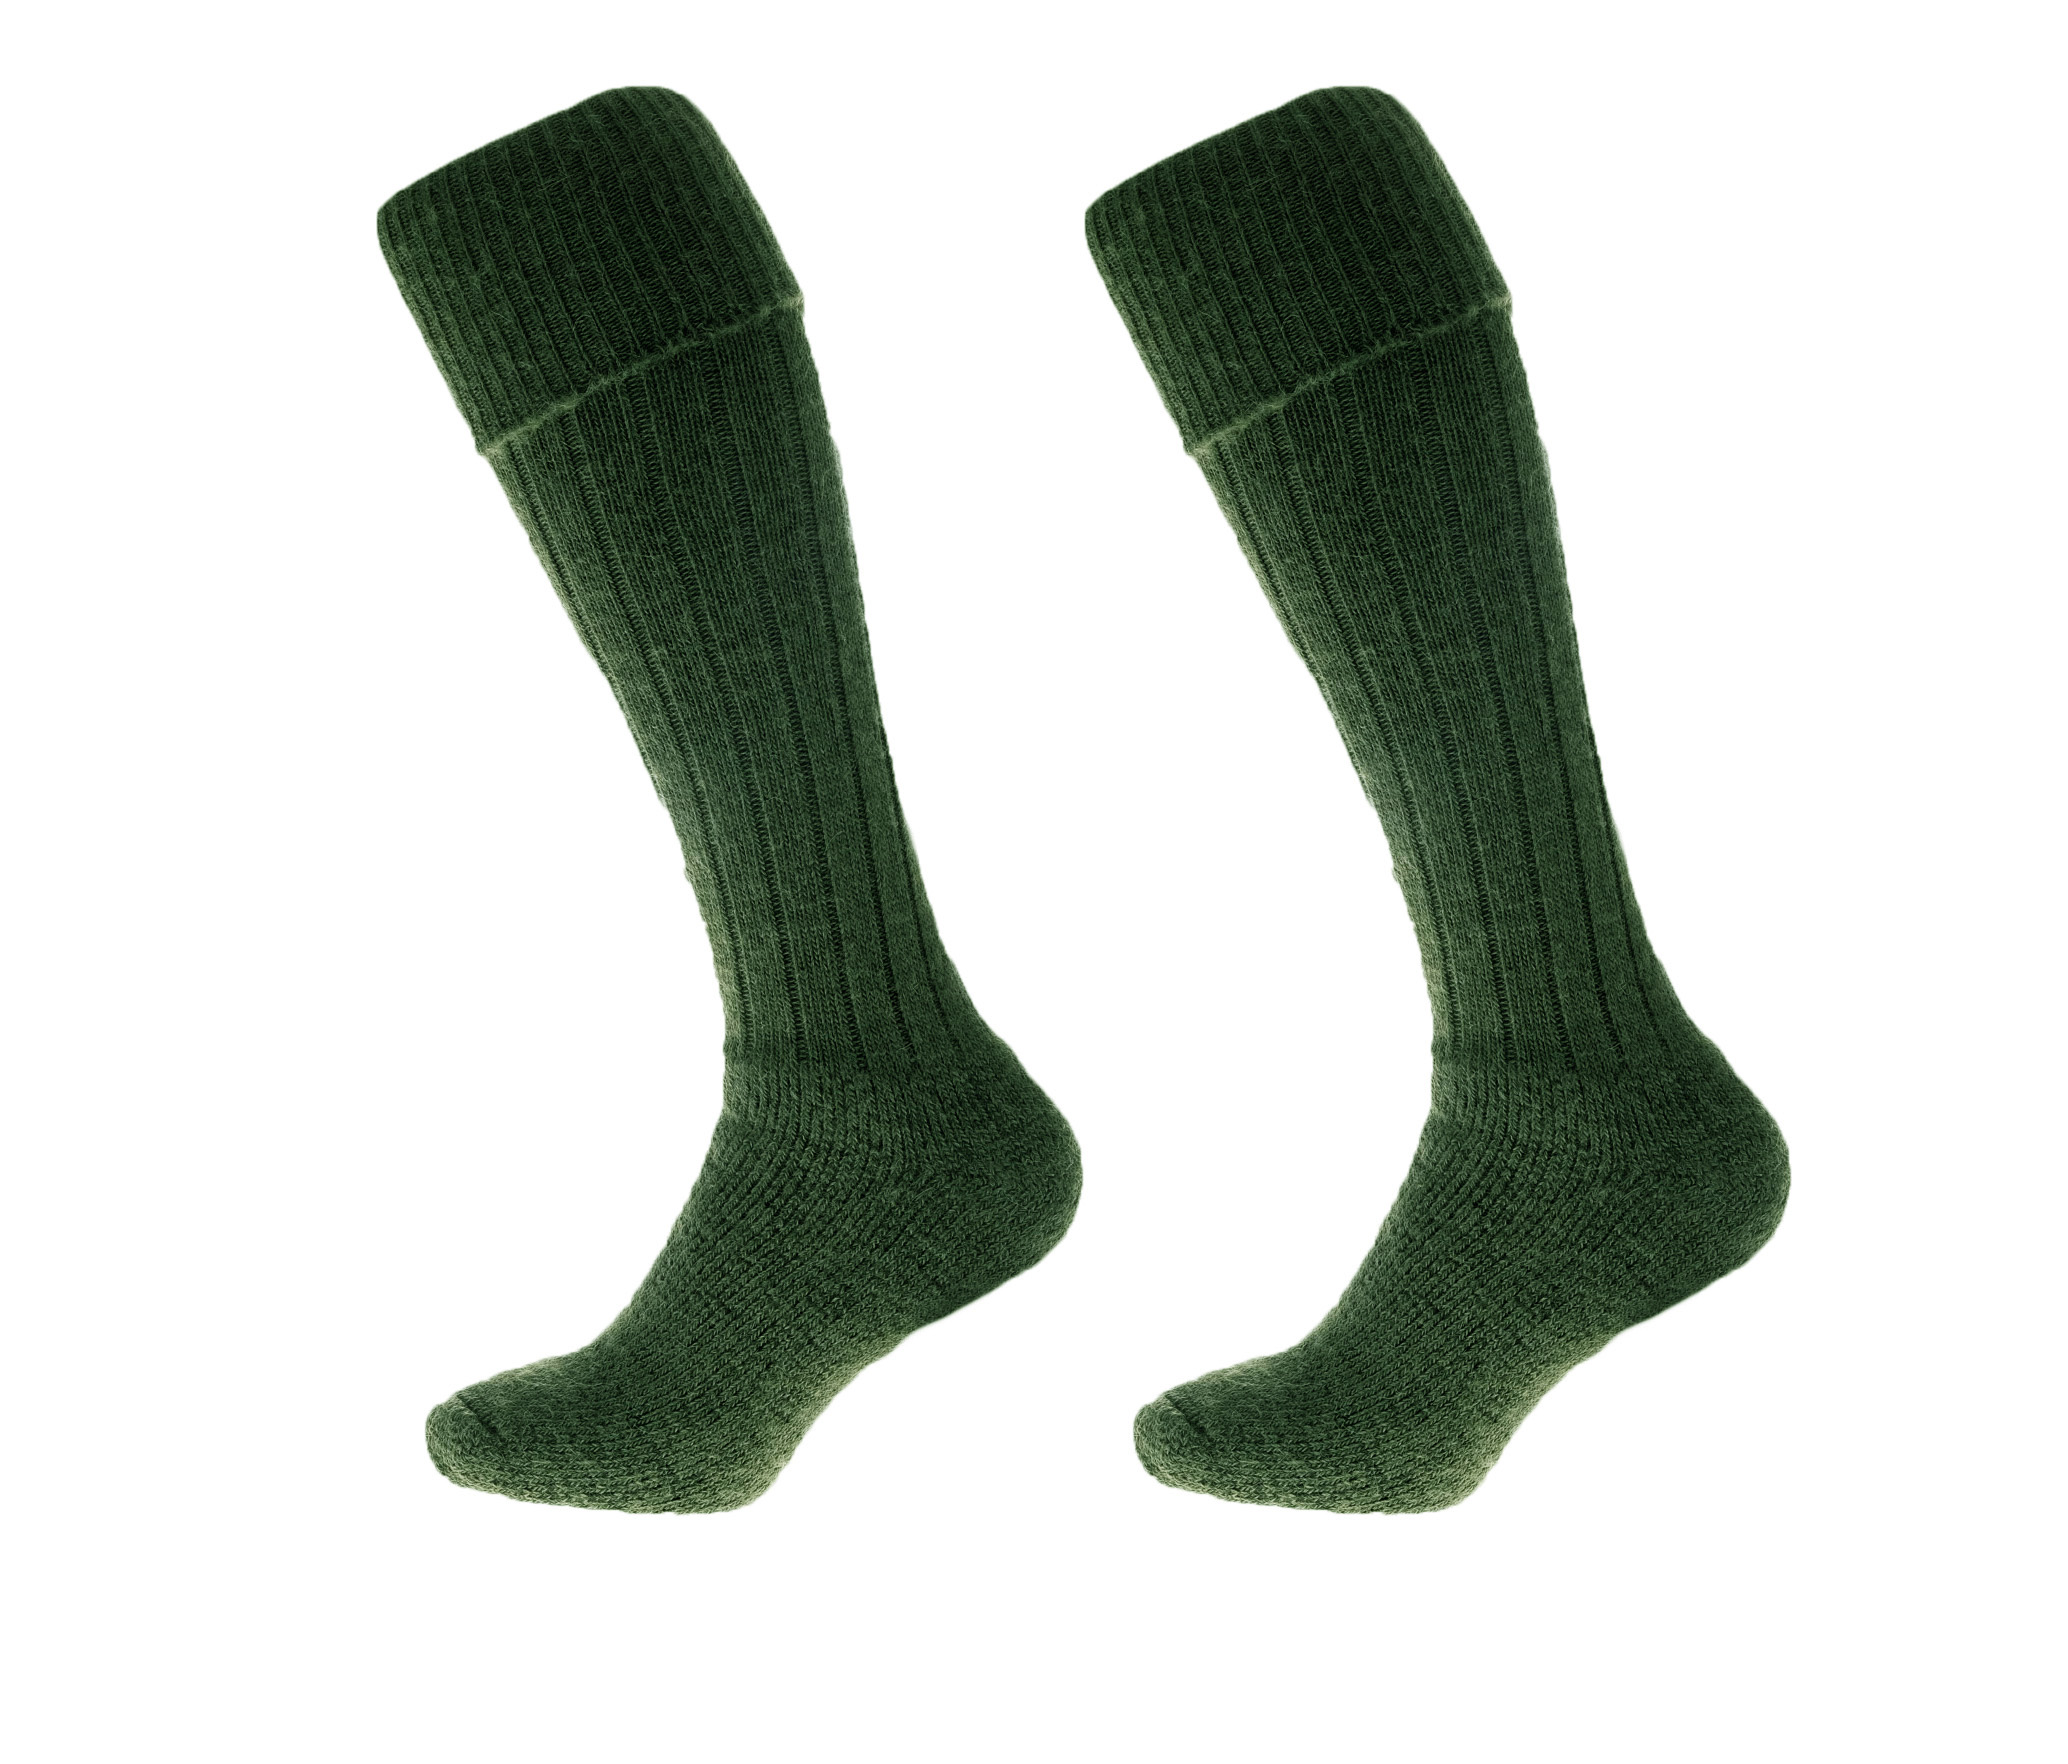 Alpaca Wool Long Country Socks Green 75% Alpaca Wool cushioned sole and heel